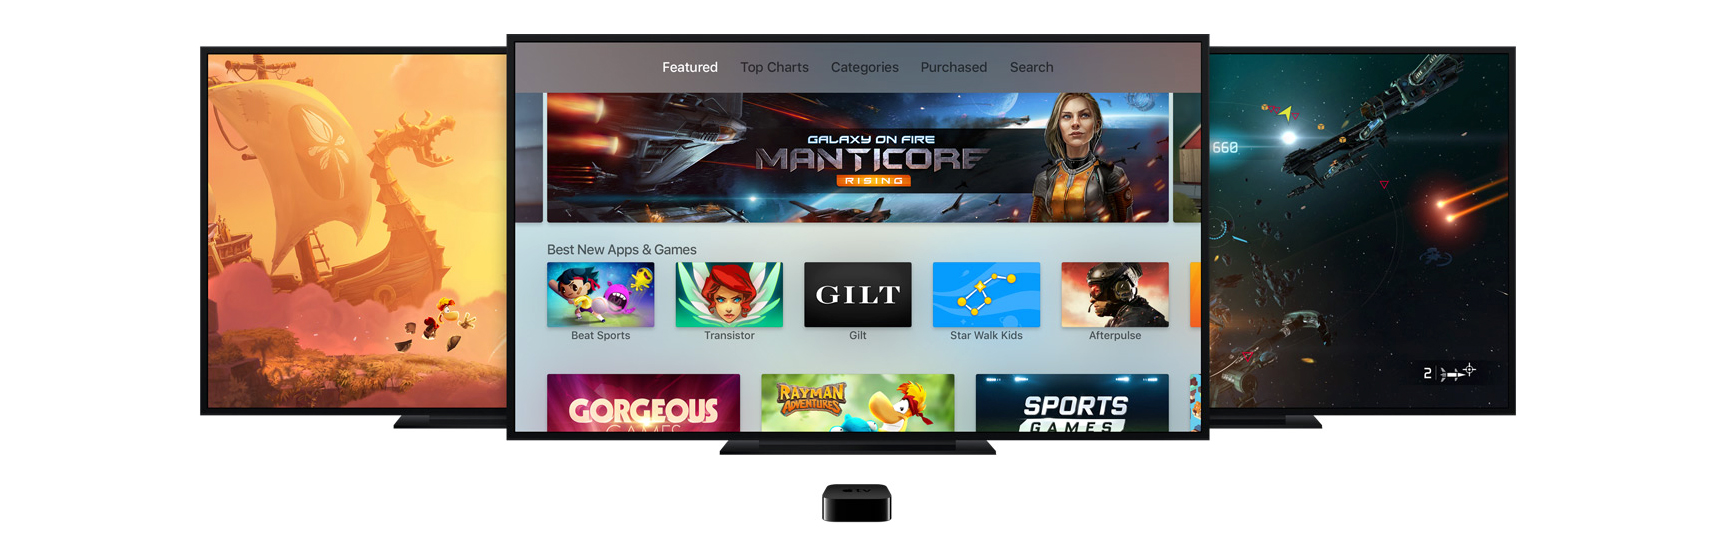 A refurbished fourth-generation Apple TV is now available to purchase through Apple